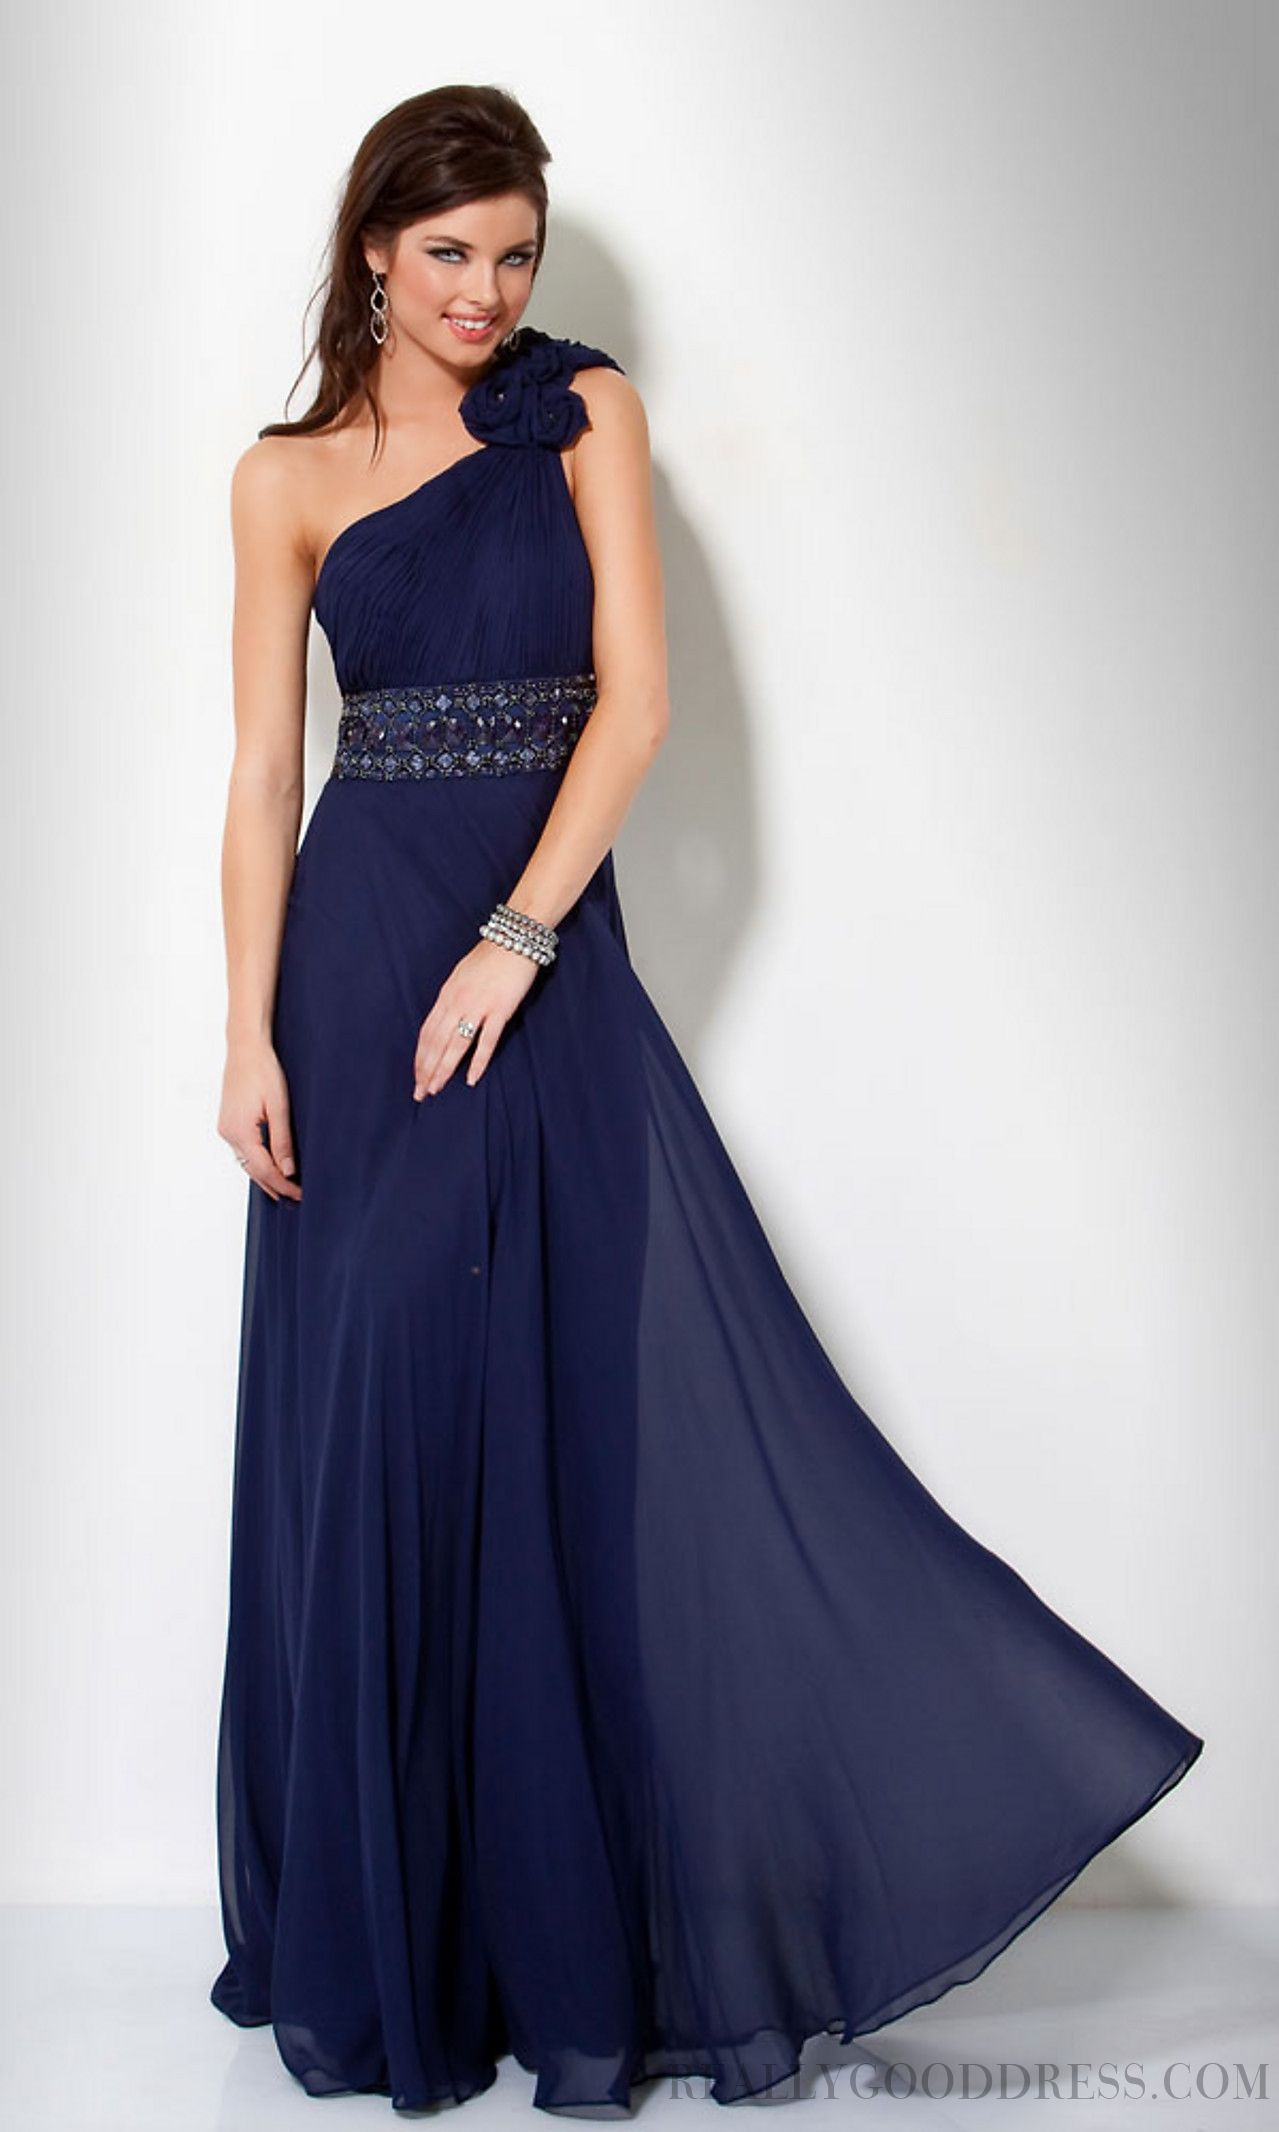 A-line Floor-length One Shoulder Chiffon Prom Dresses